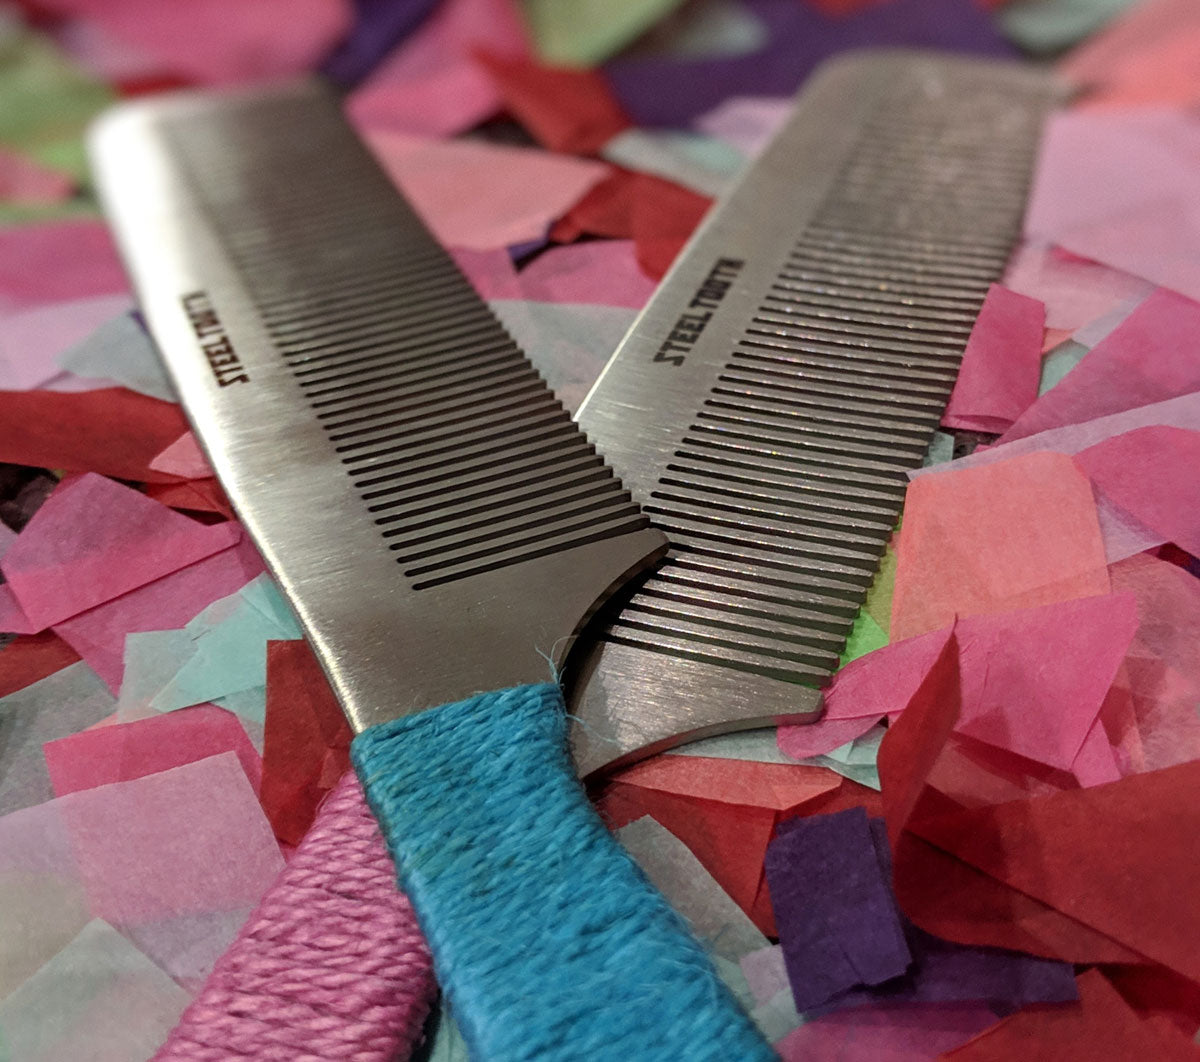 Two combs one with pink and the other a blue handle.